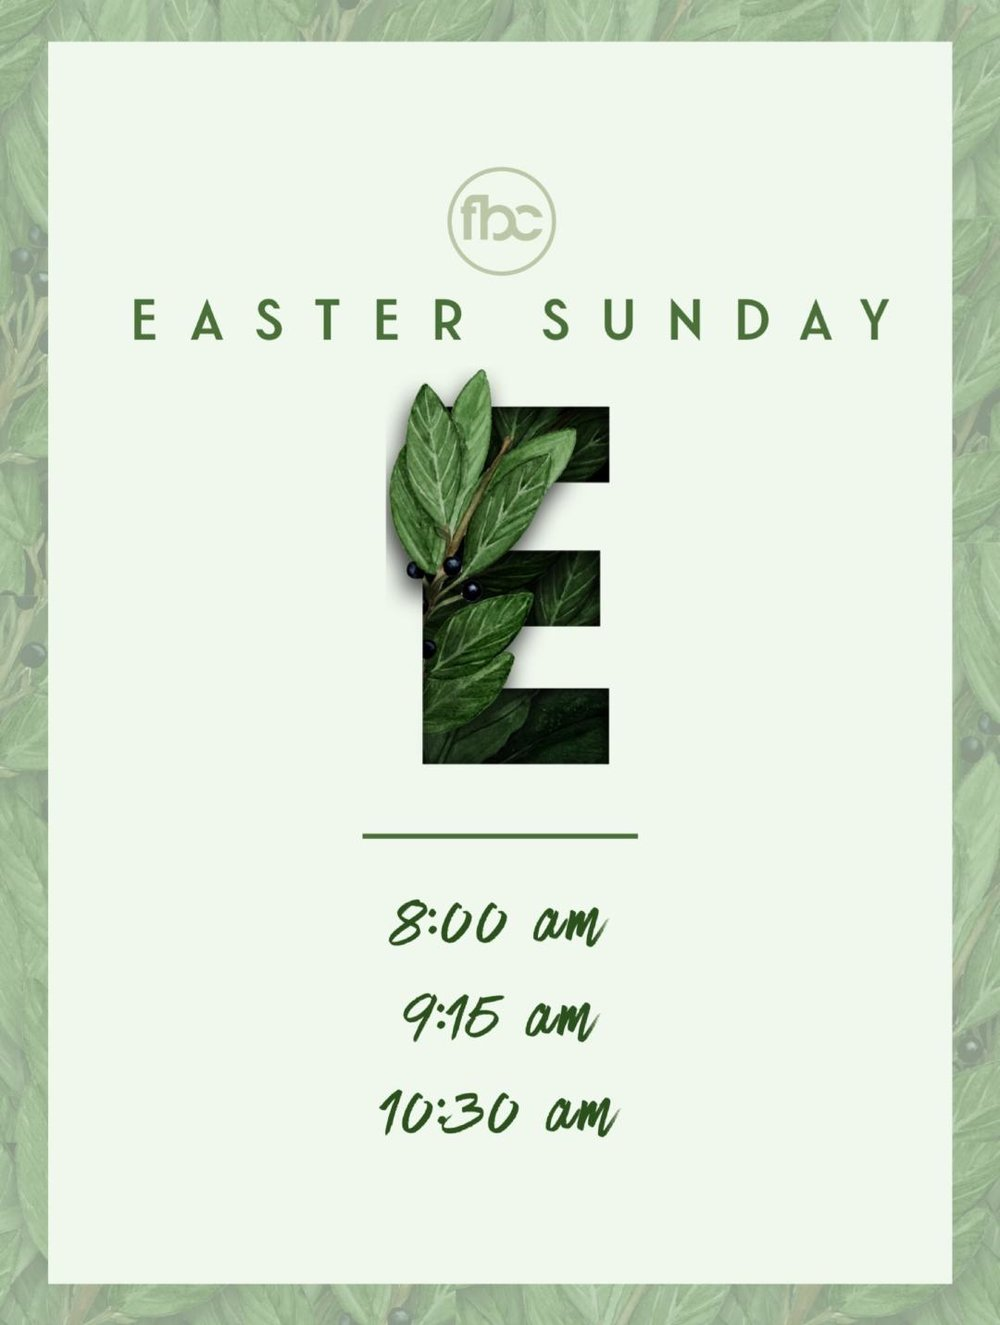 EASTER SUNDAY - We can't wait to Celebrate Resurrection Sunday with you and your family! Join us for one of the 3 Worship Services. Classes available for children of all ages, We will have a beautiful day lifting up the name of Jesus!8:00 am | 8:15 am | 10:30 am